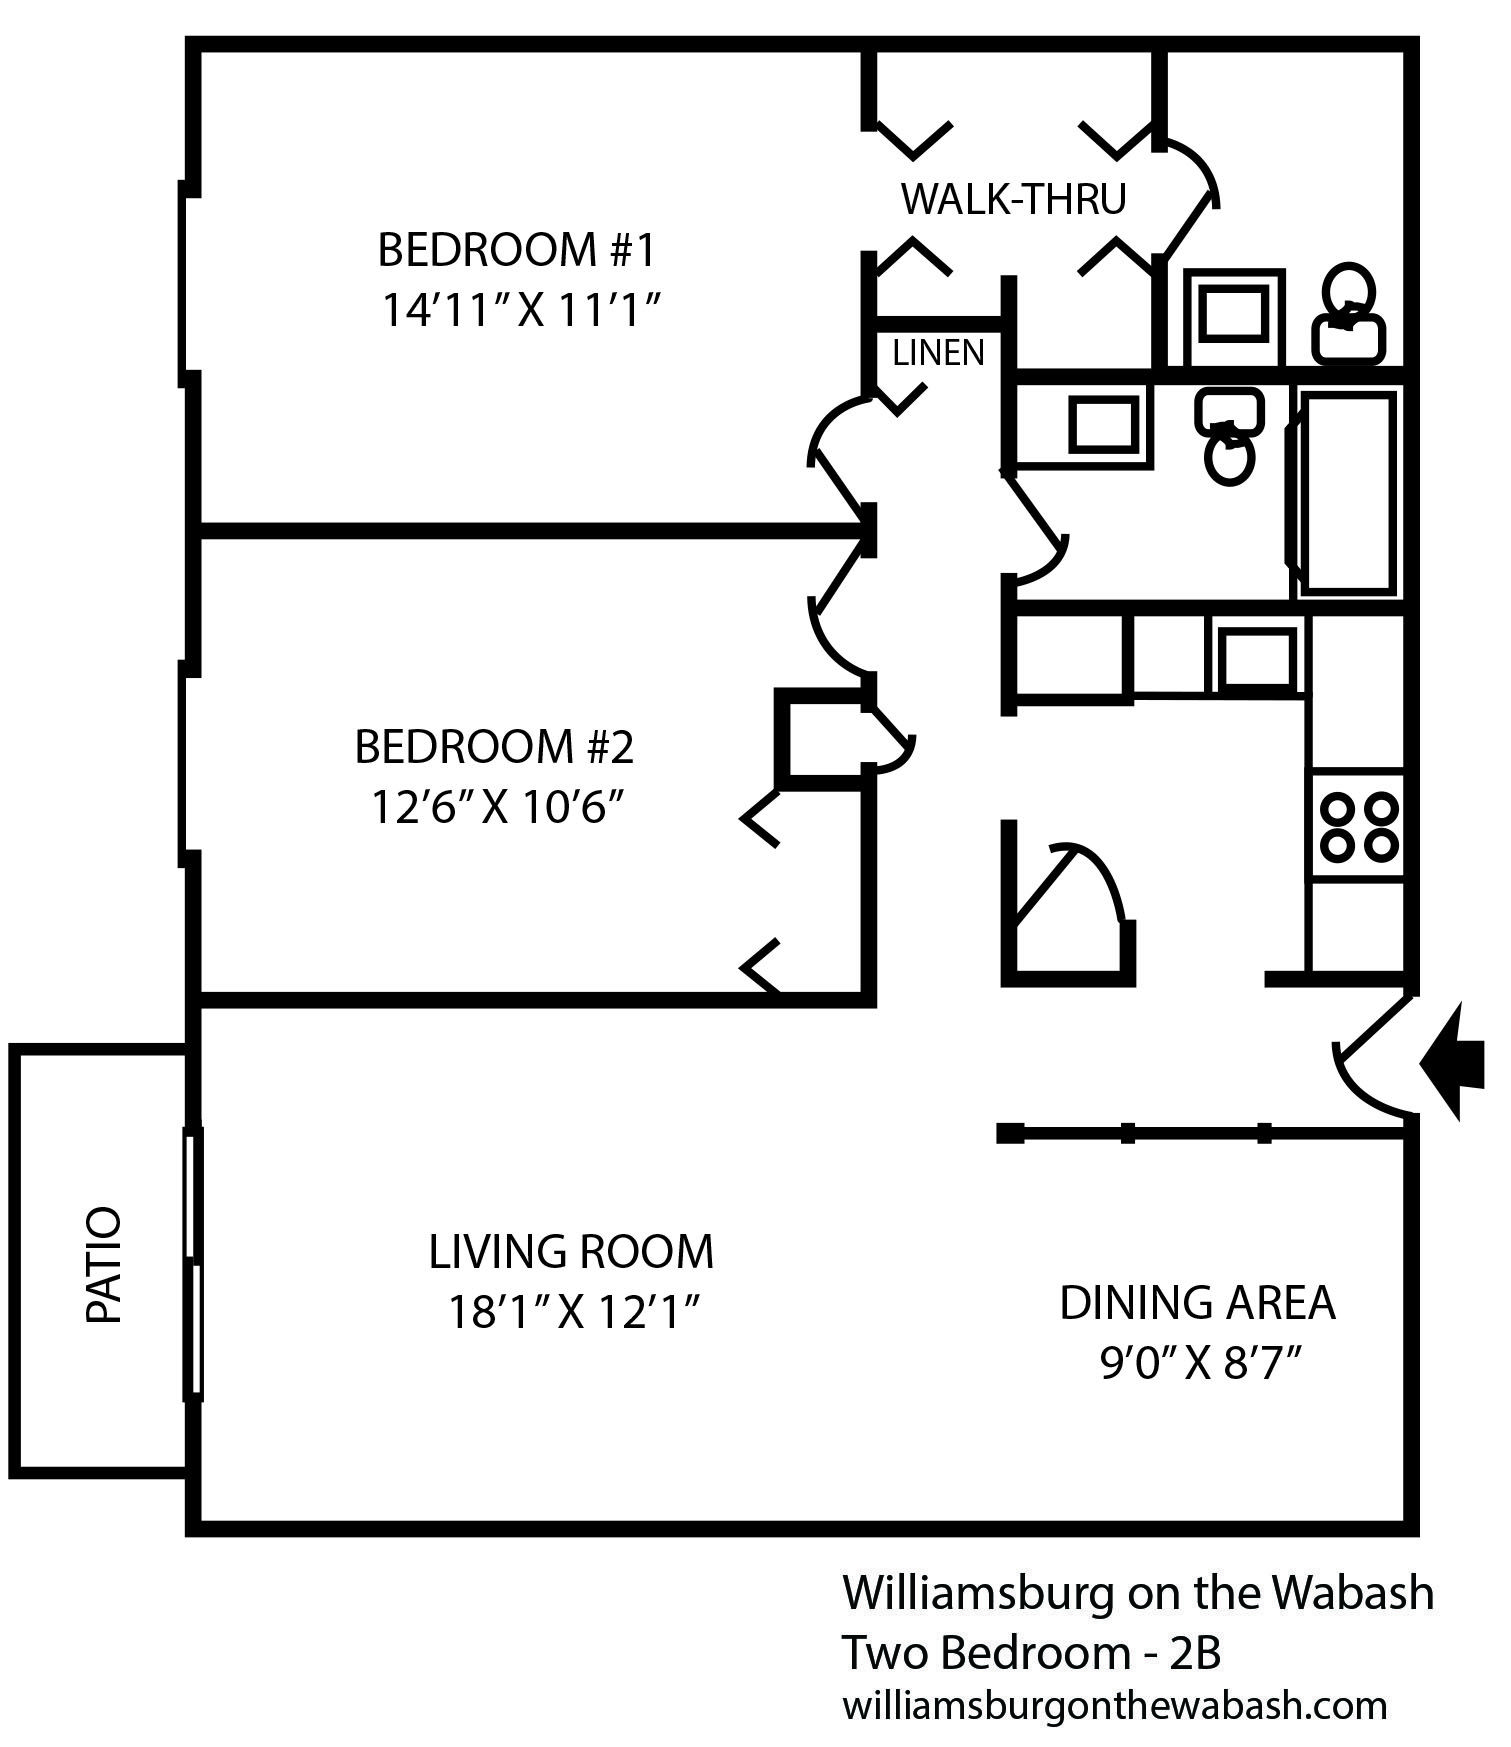 2 Bedroom Apartment Near Me Rent: Two Bedroom Apartment Near Purdue University In West